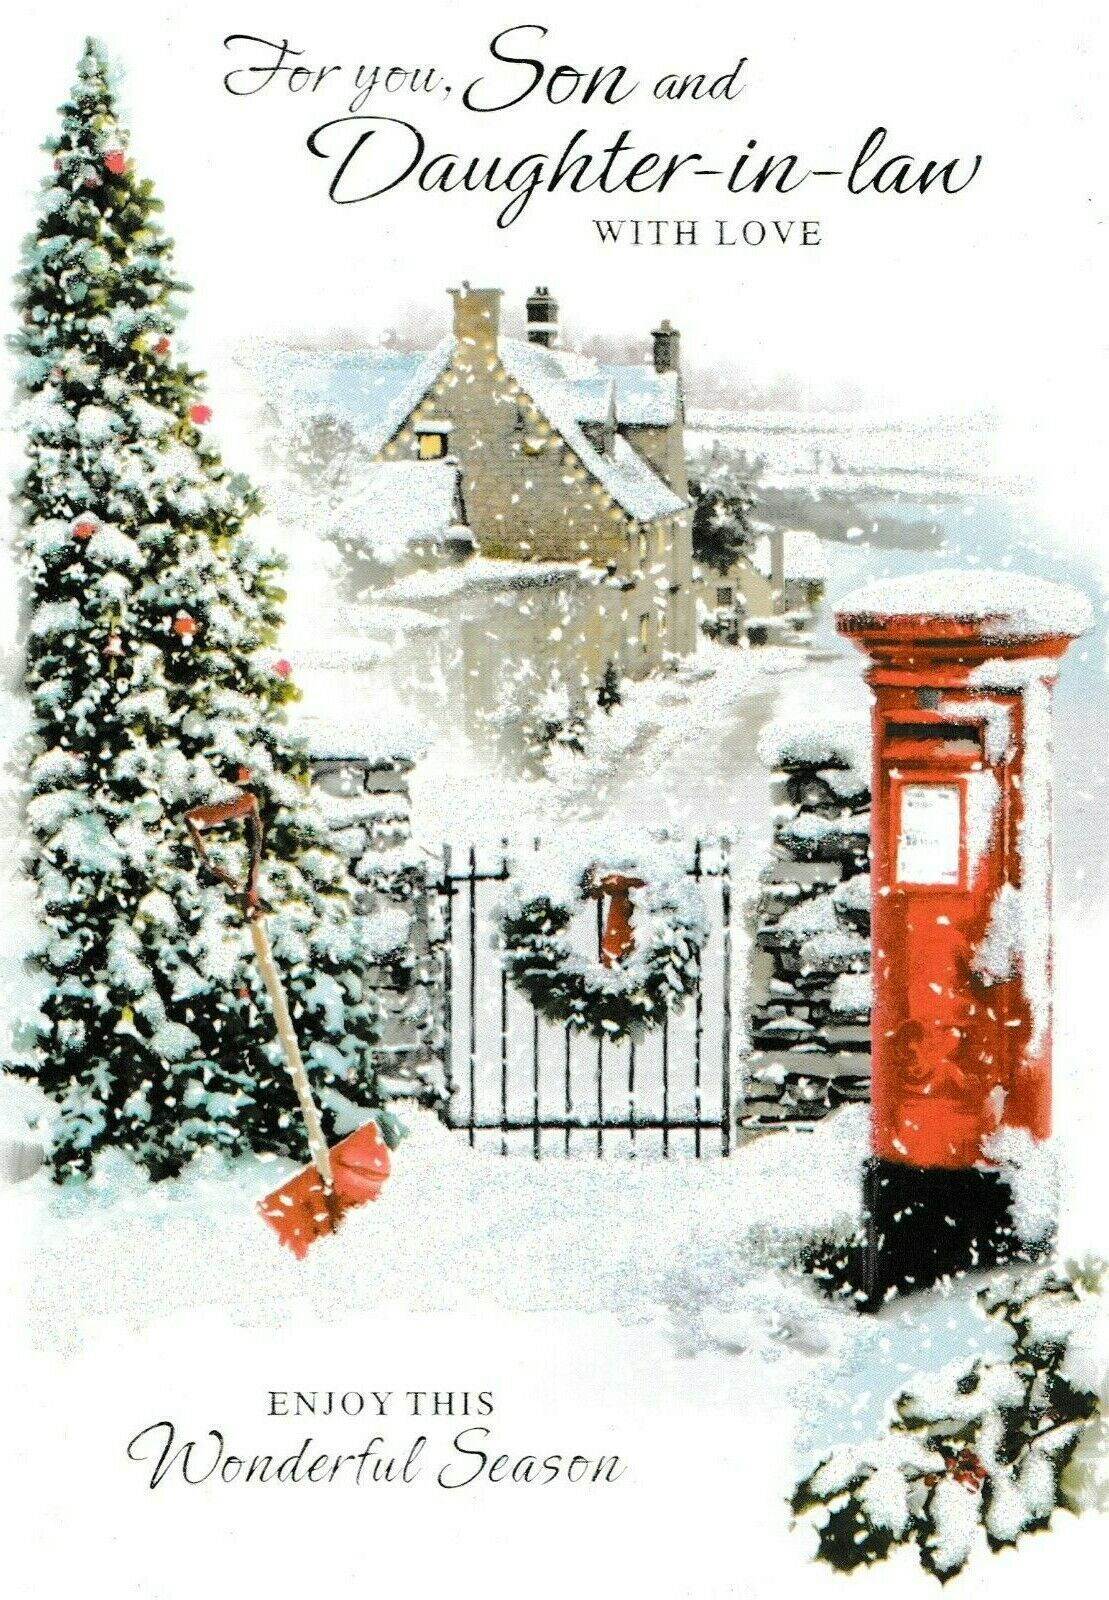 TRADITIONAL SON AND DAUGHTER-IN-LAW christmas card - 7 x cards to ...